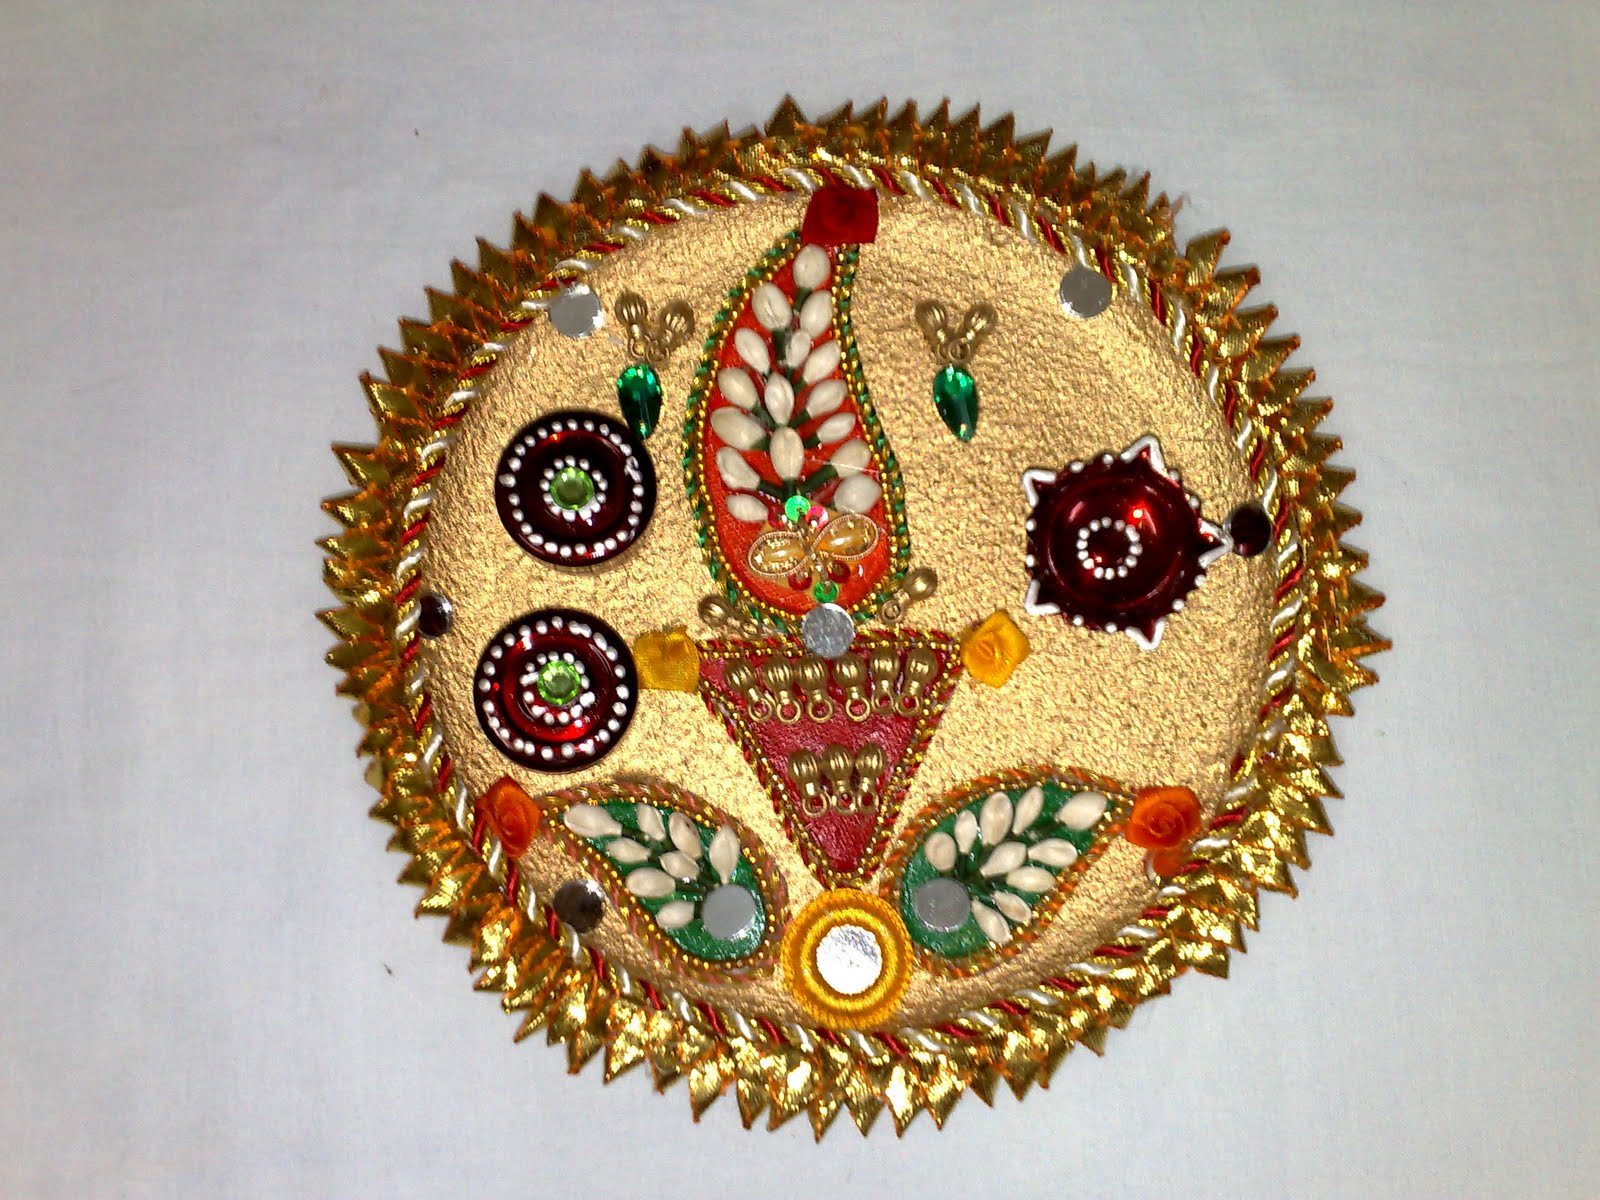 Ranjana arts www ranjanaarts com aarti thali 2011 new for Aarti thali decoration ideas for ganpati